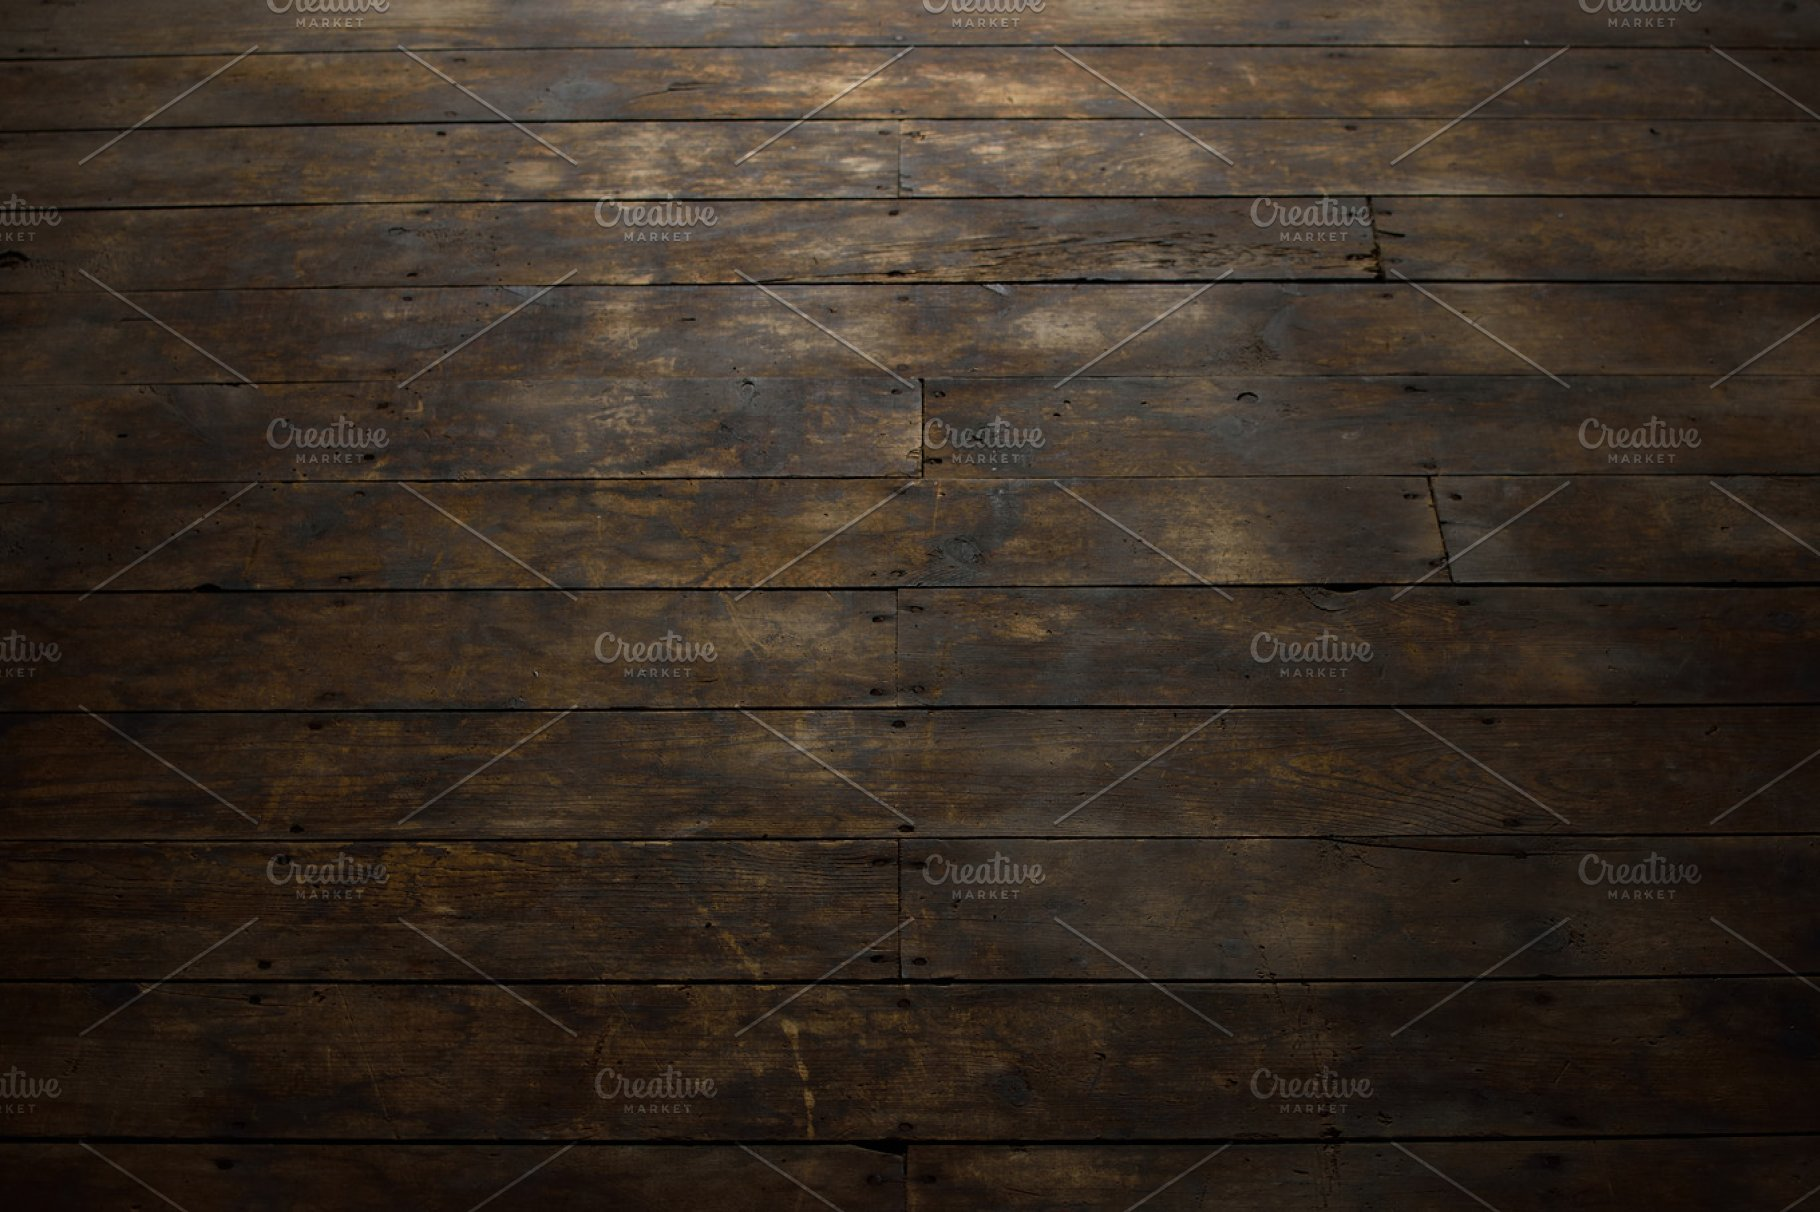 View Of Distressed Wood Flooring High Quality Abstract Stock